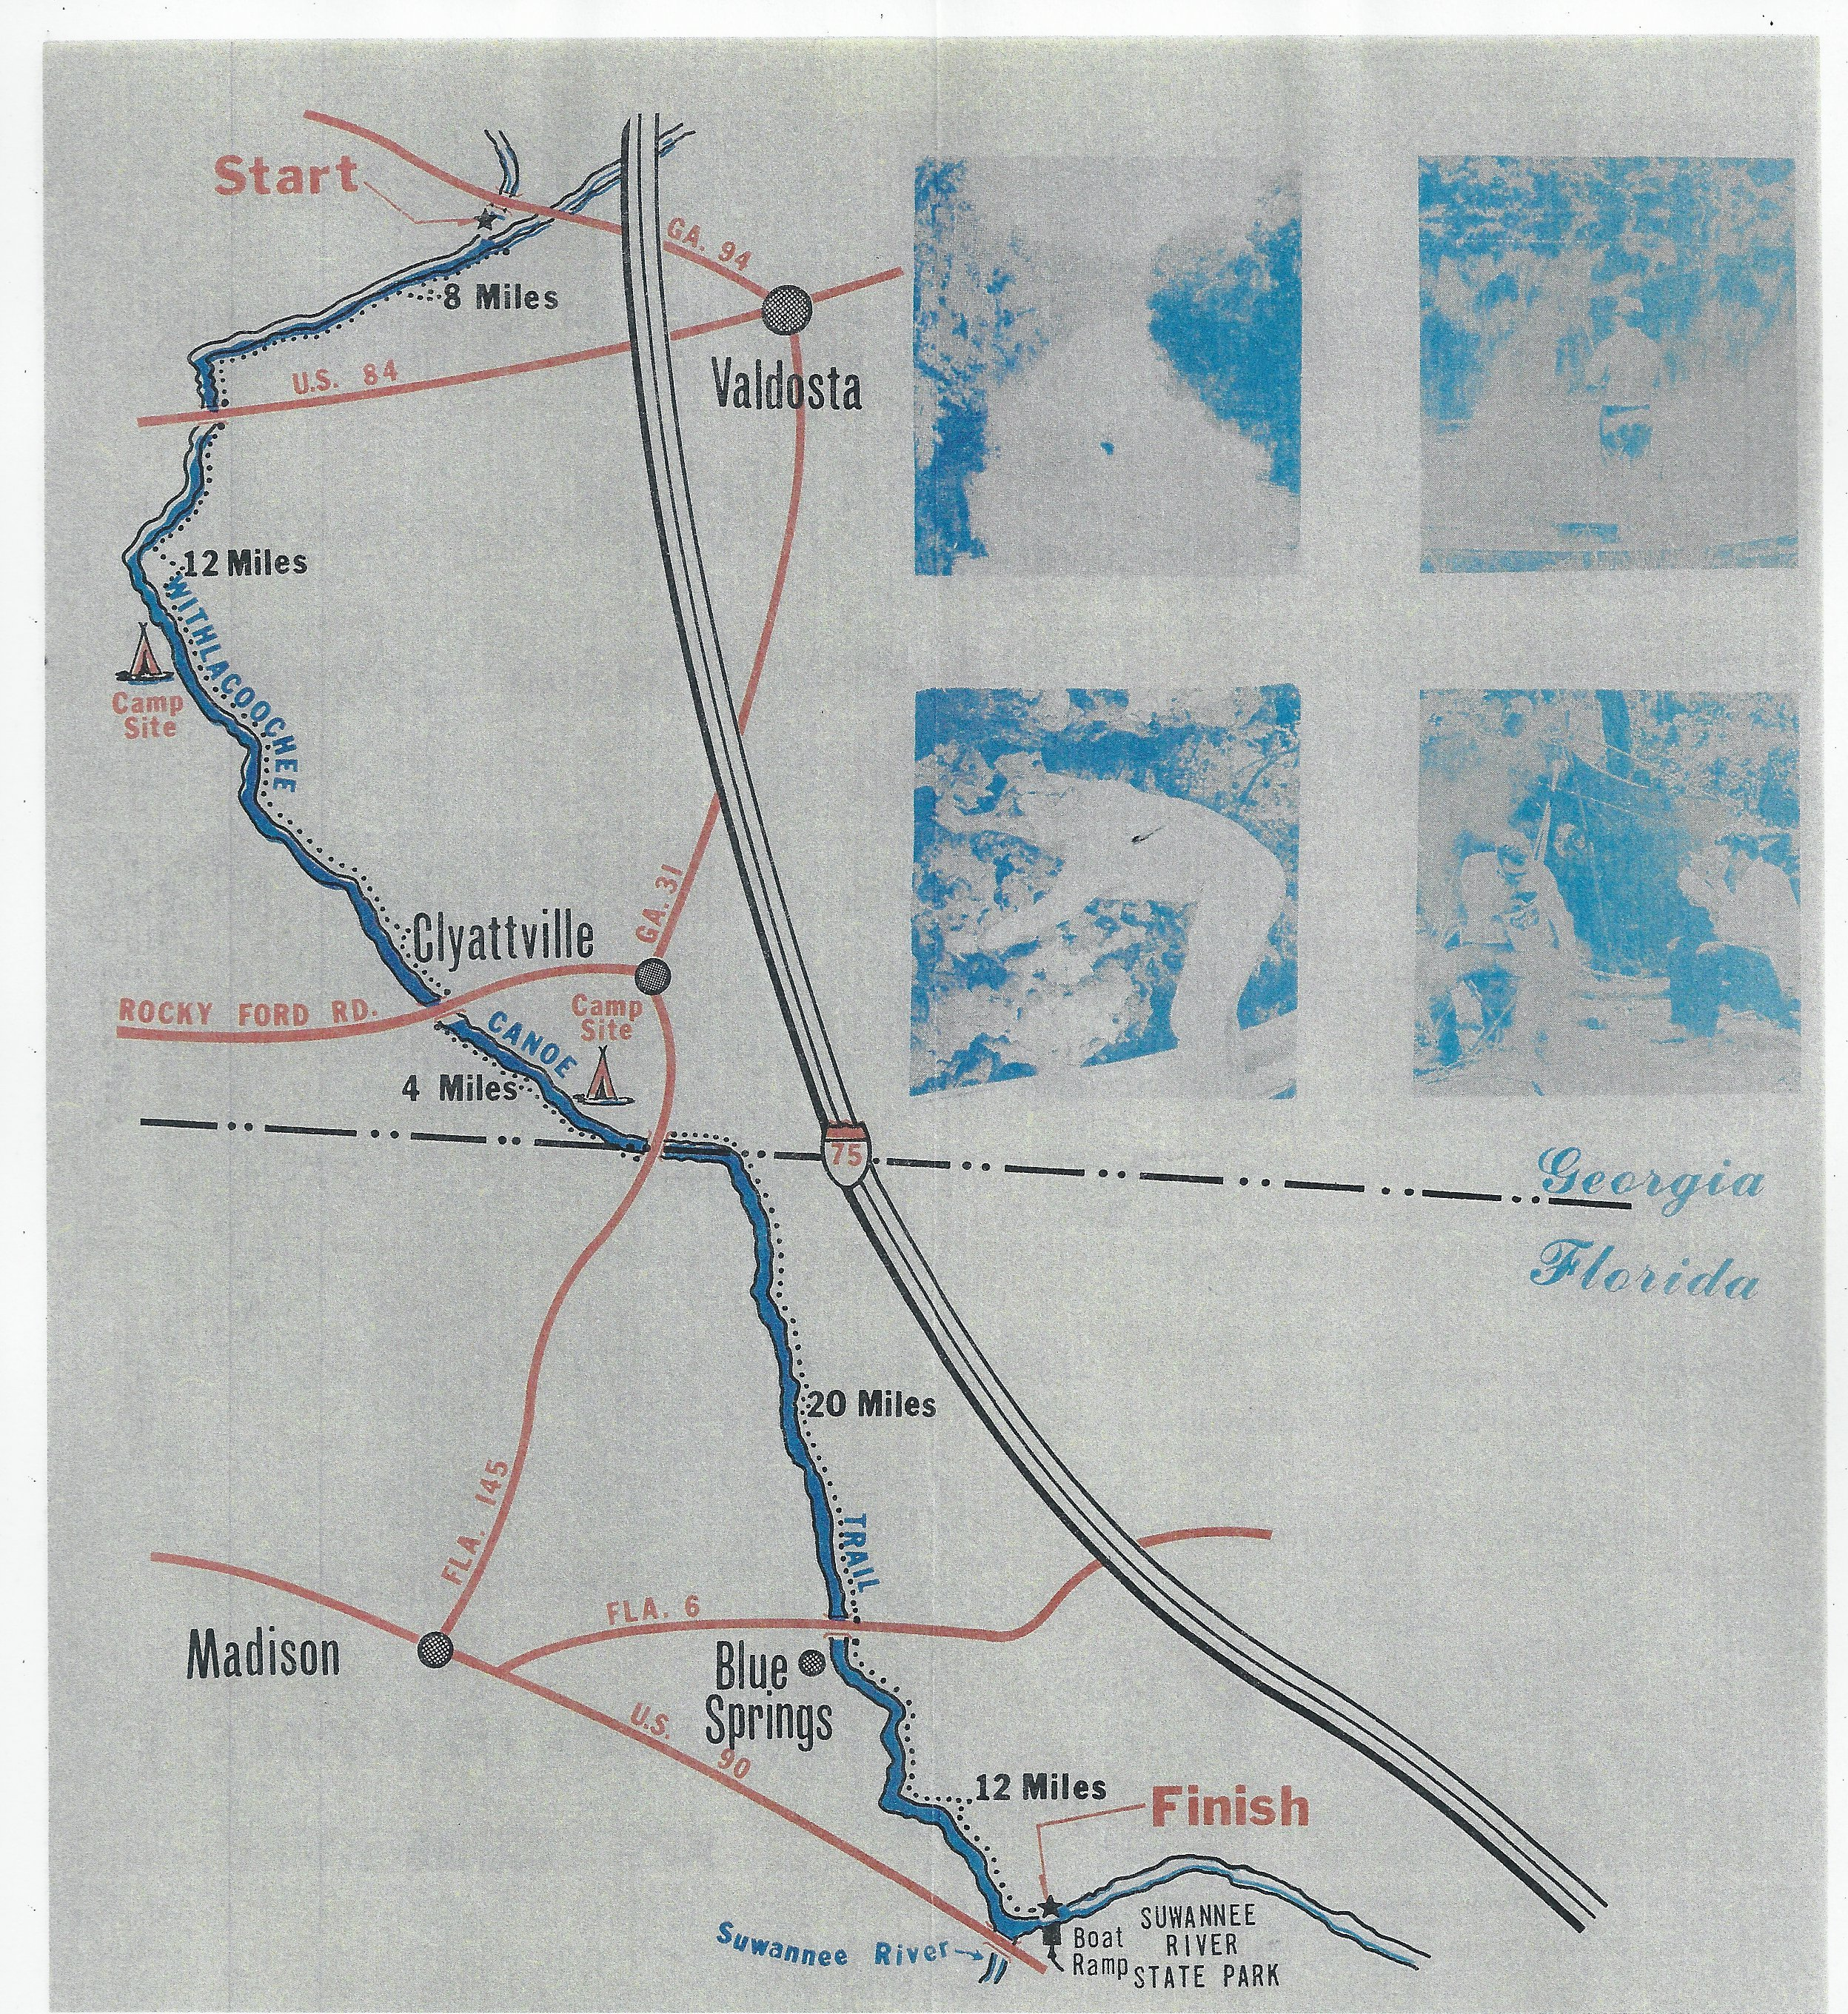 2496x2720 Map, in Canoe Guide to the Withlacoochee River Trail, by John S. Quarterman, for WWALS.net, 0  1979